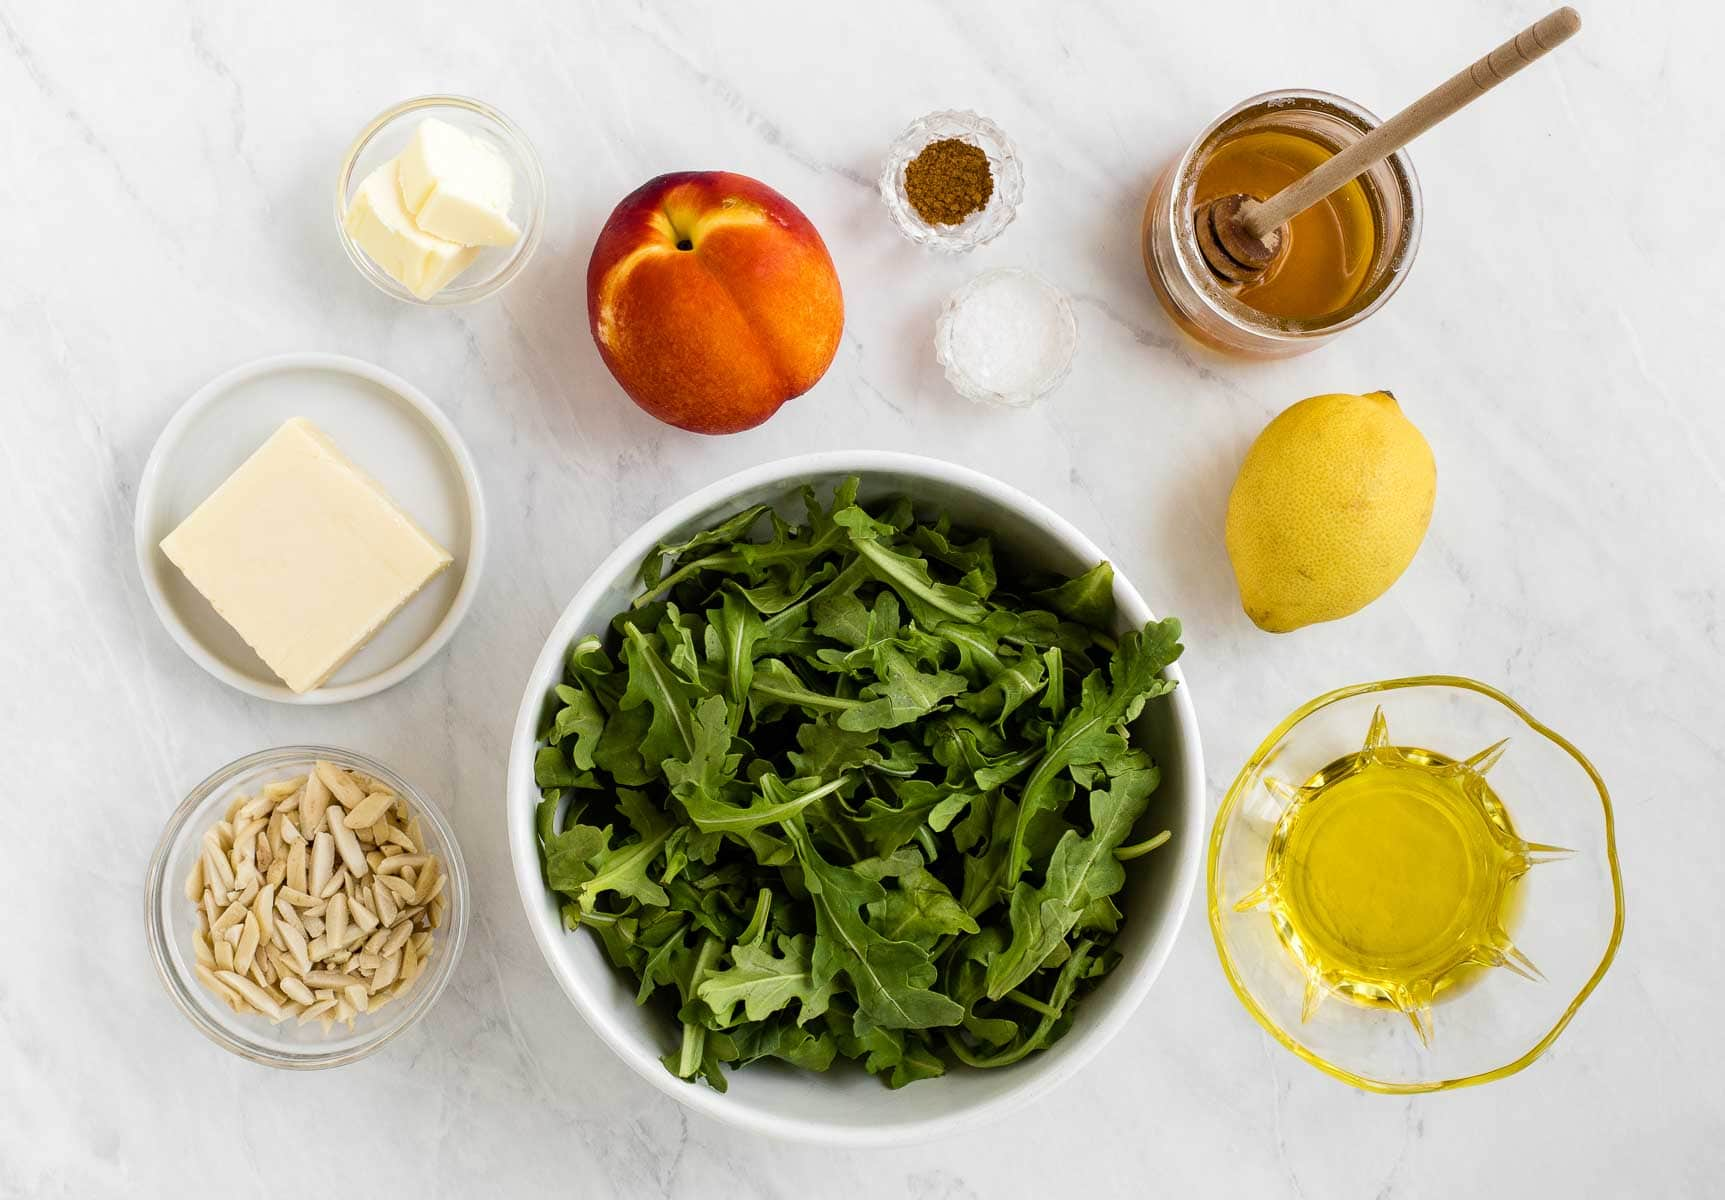 Ingredients for arugula and nectarine salad on a white table.